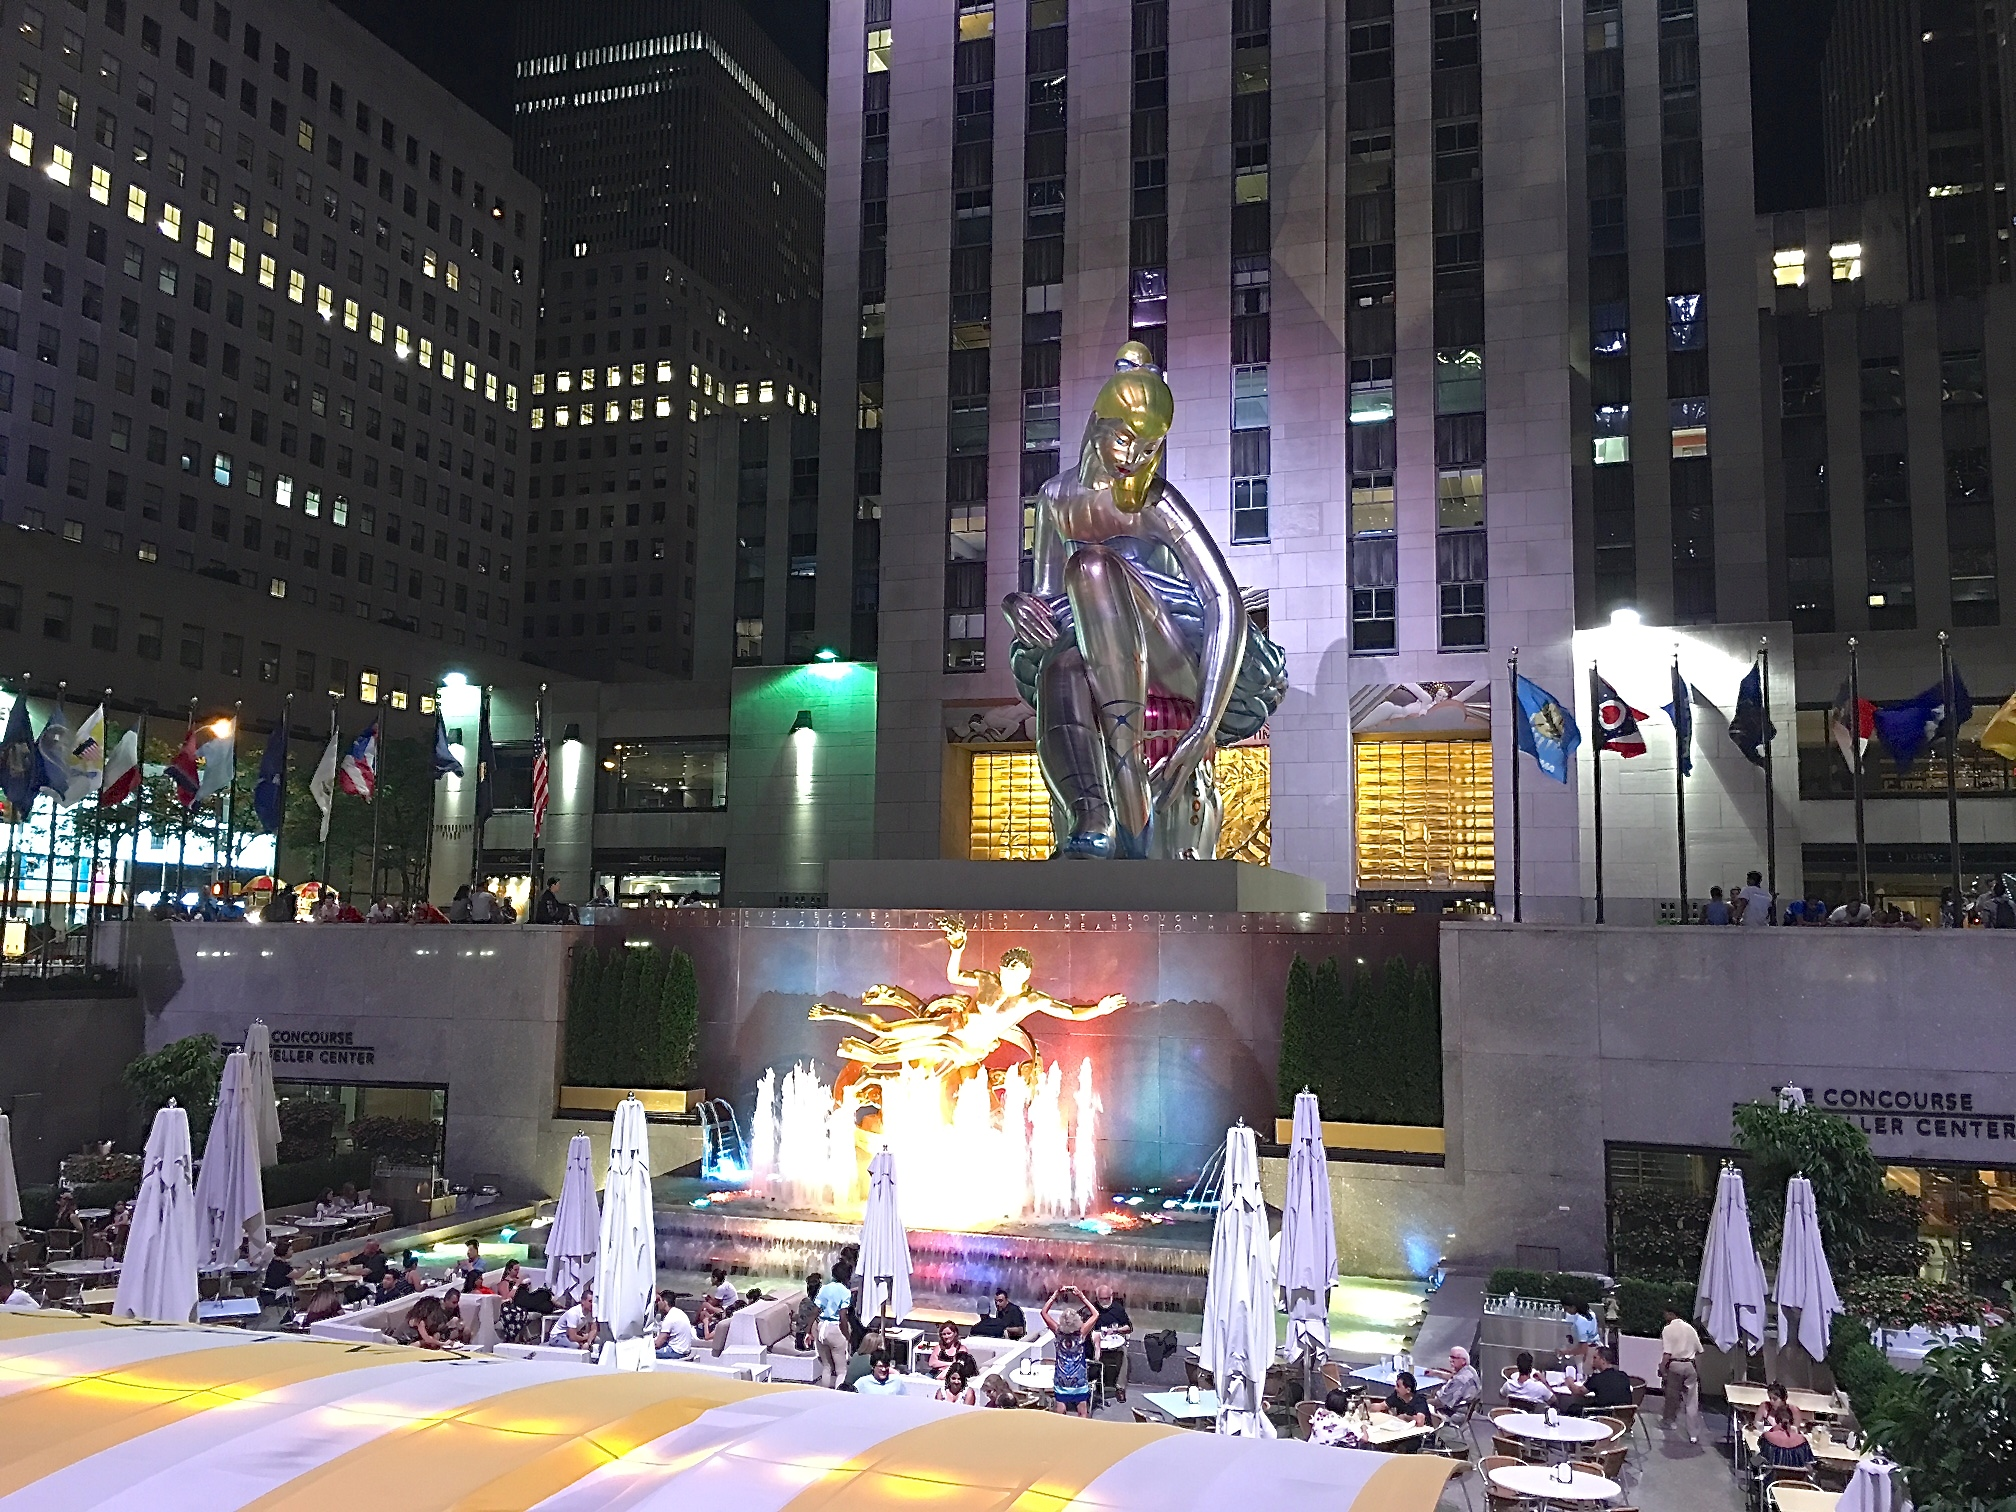 Rockefeller Center, NYC June 24, 2017